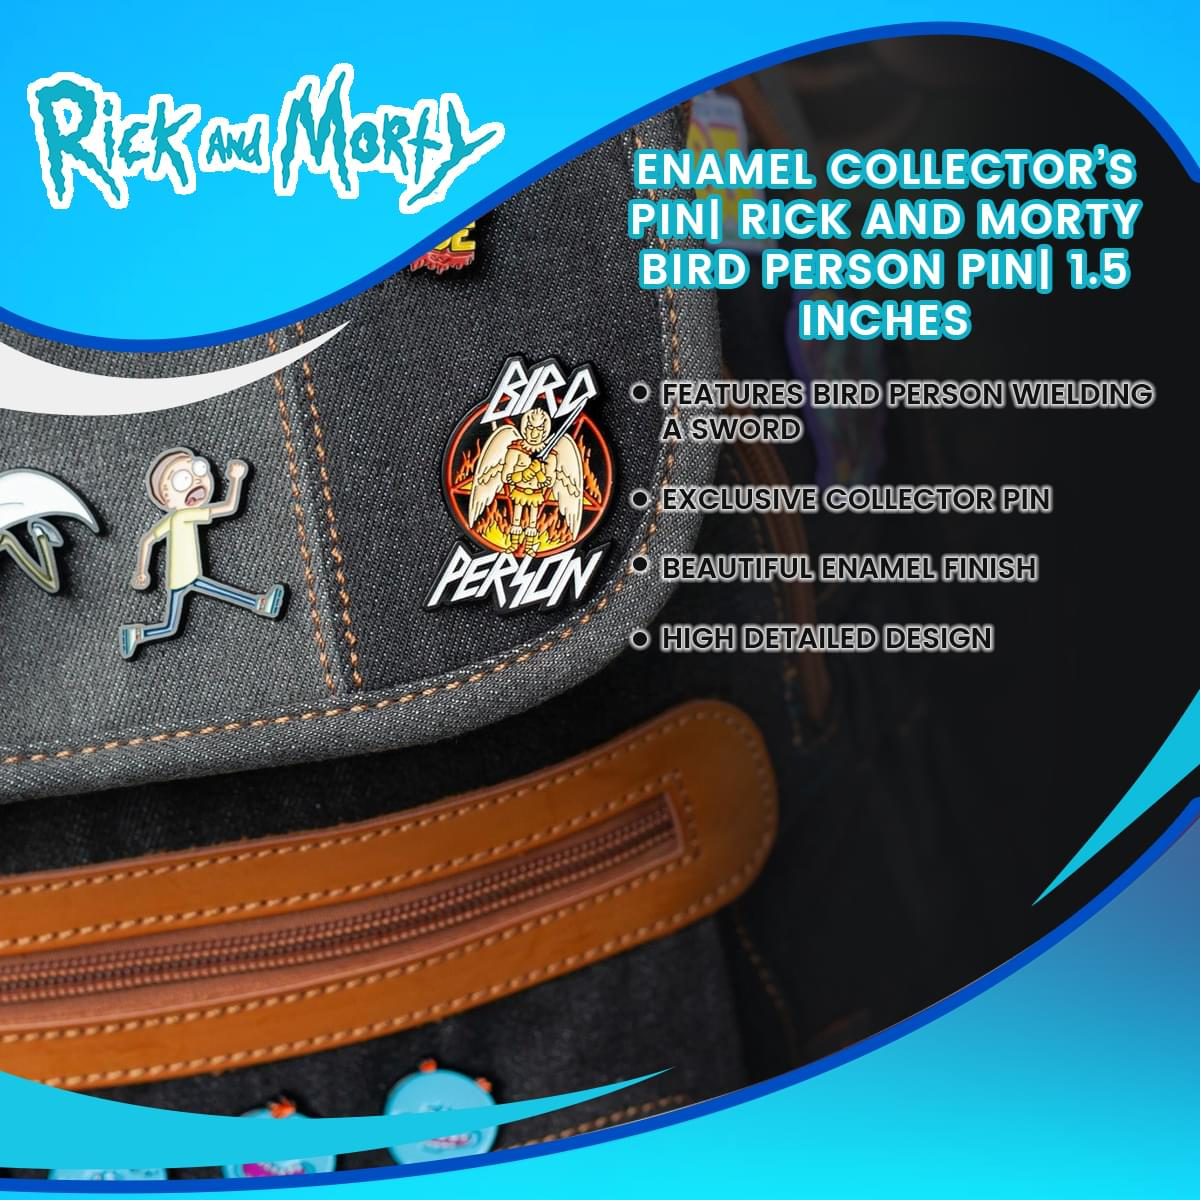 Enamel Collector's Pin| Rick and Morty Bird Person Pin| 1.5 Inches